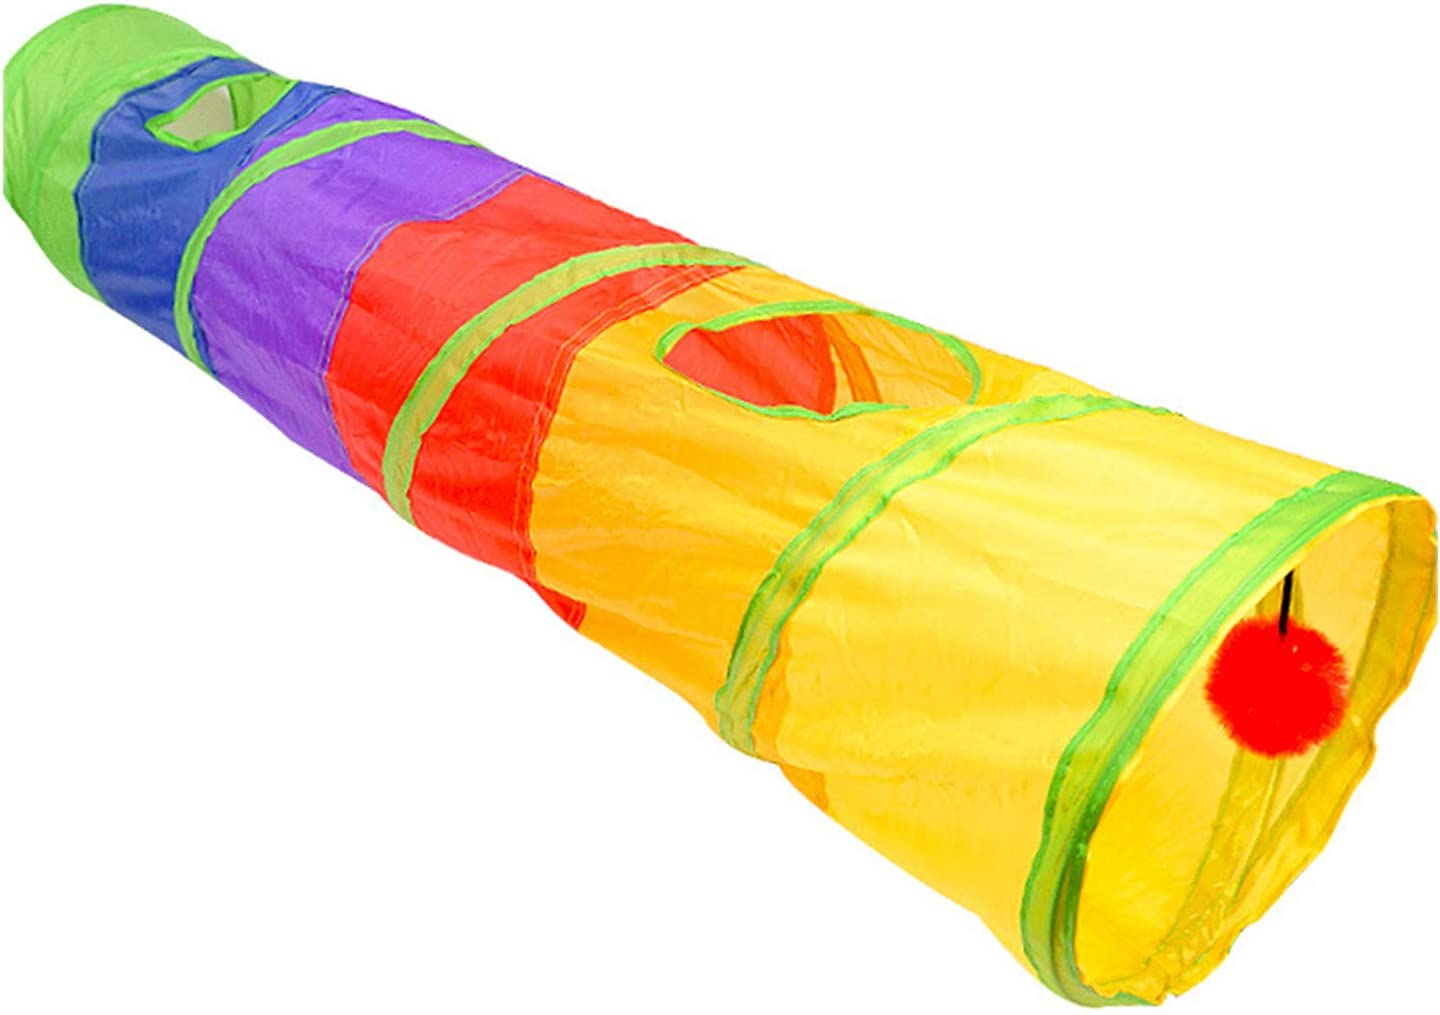 TCBH Cat Tunnel Pet Tube Collapsible Play Toy Indoor Outdoor Kitty Puppy Toys for Puzzle Exercising Hiding Training and Running with Fun Ball and Two Peek Hole Multicolor Rainbow